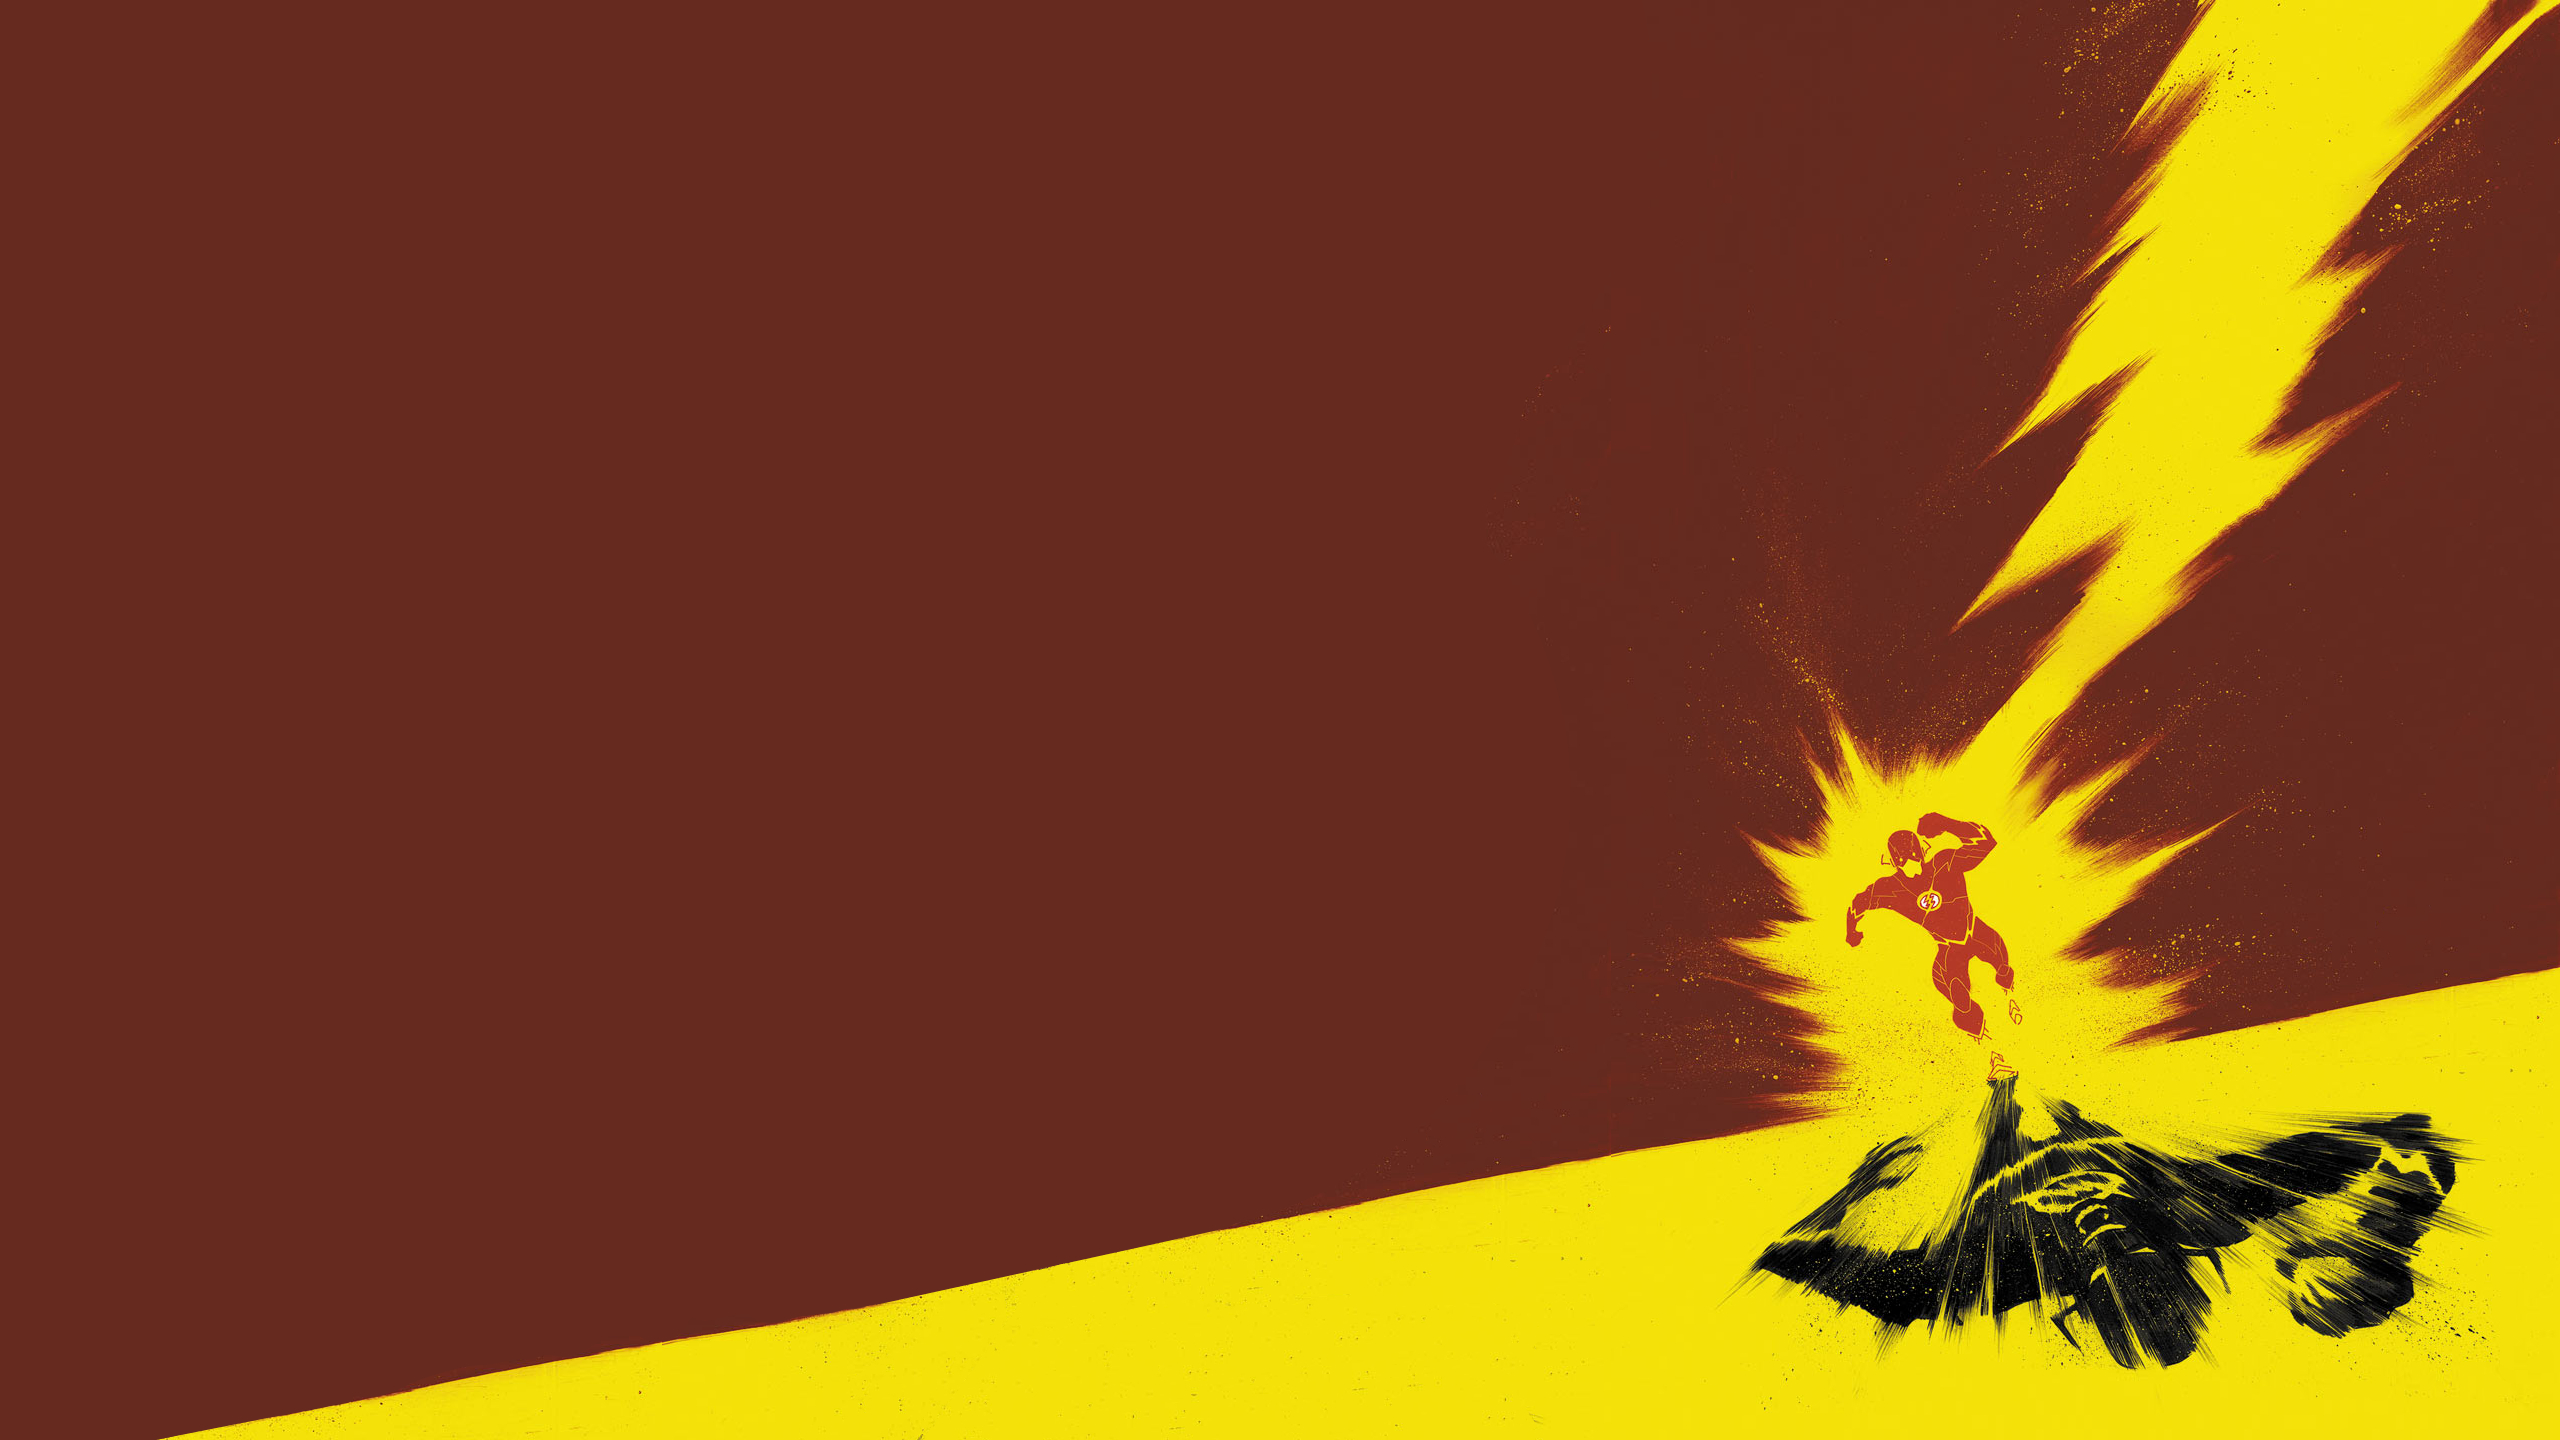 wallpaper superheroe flash minimalista 2560x1440